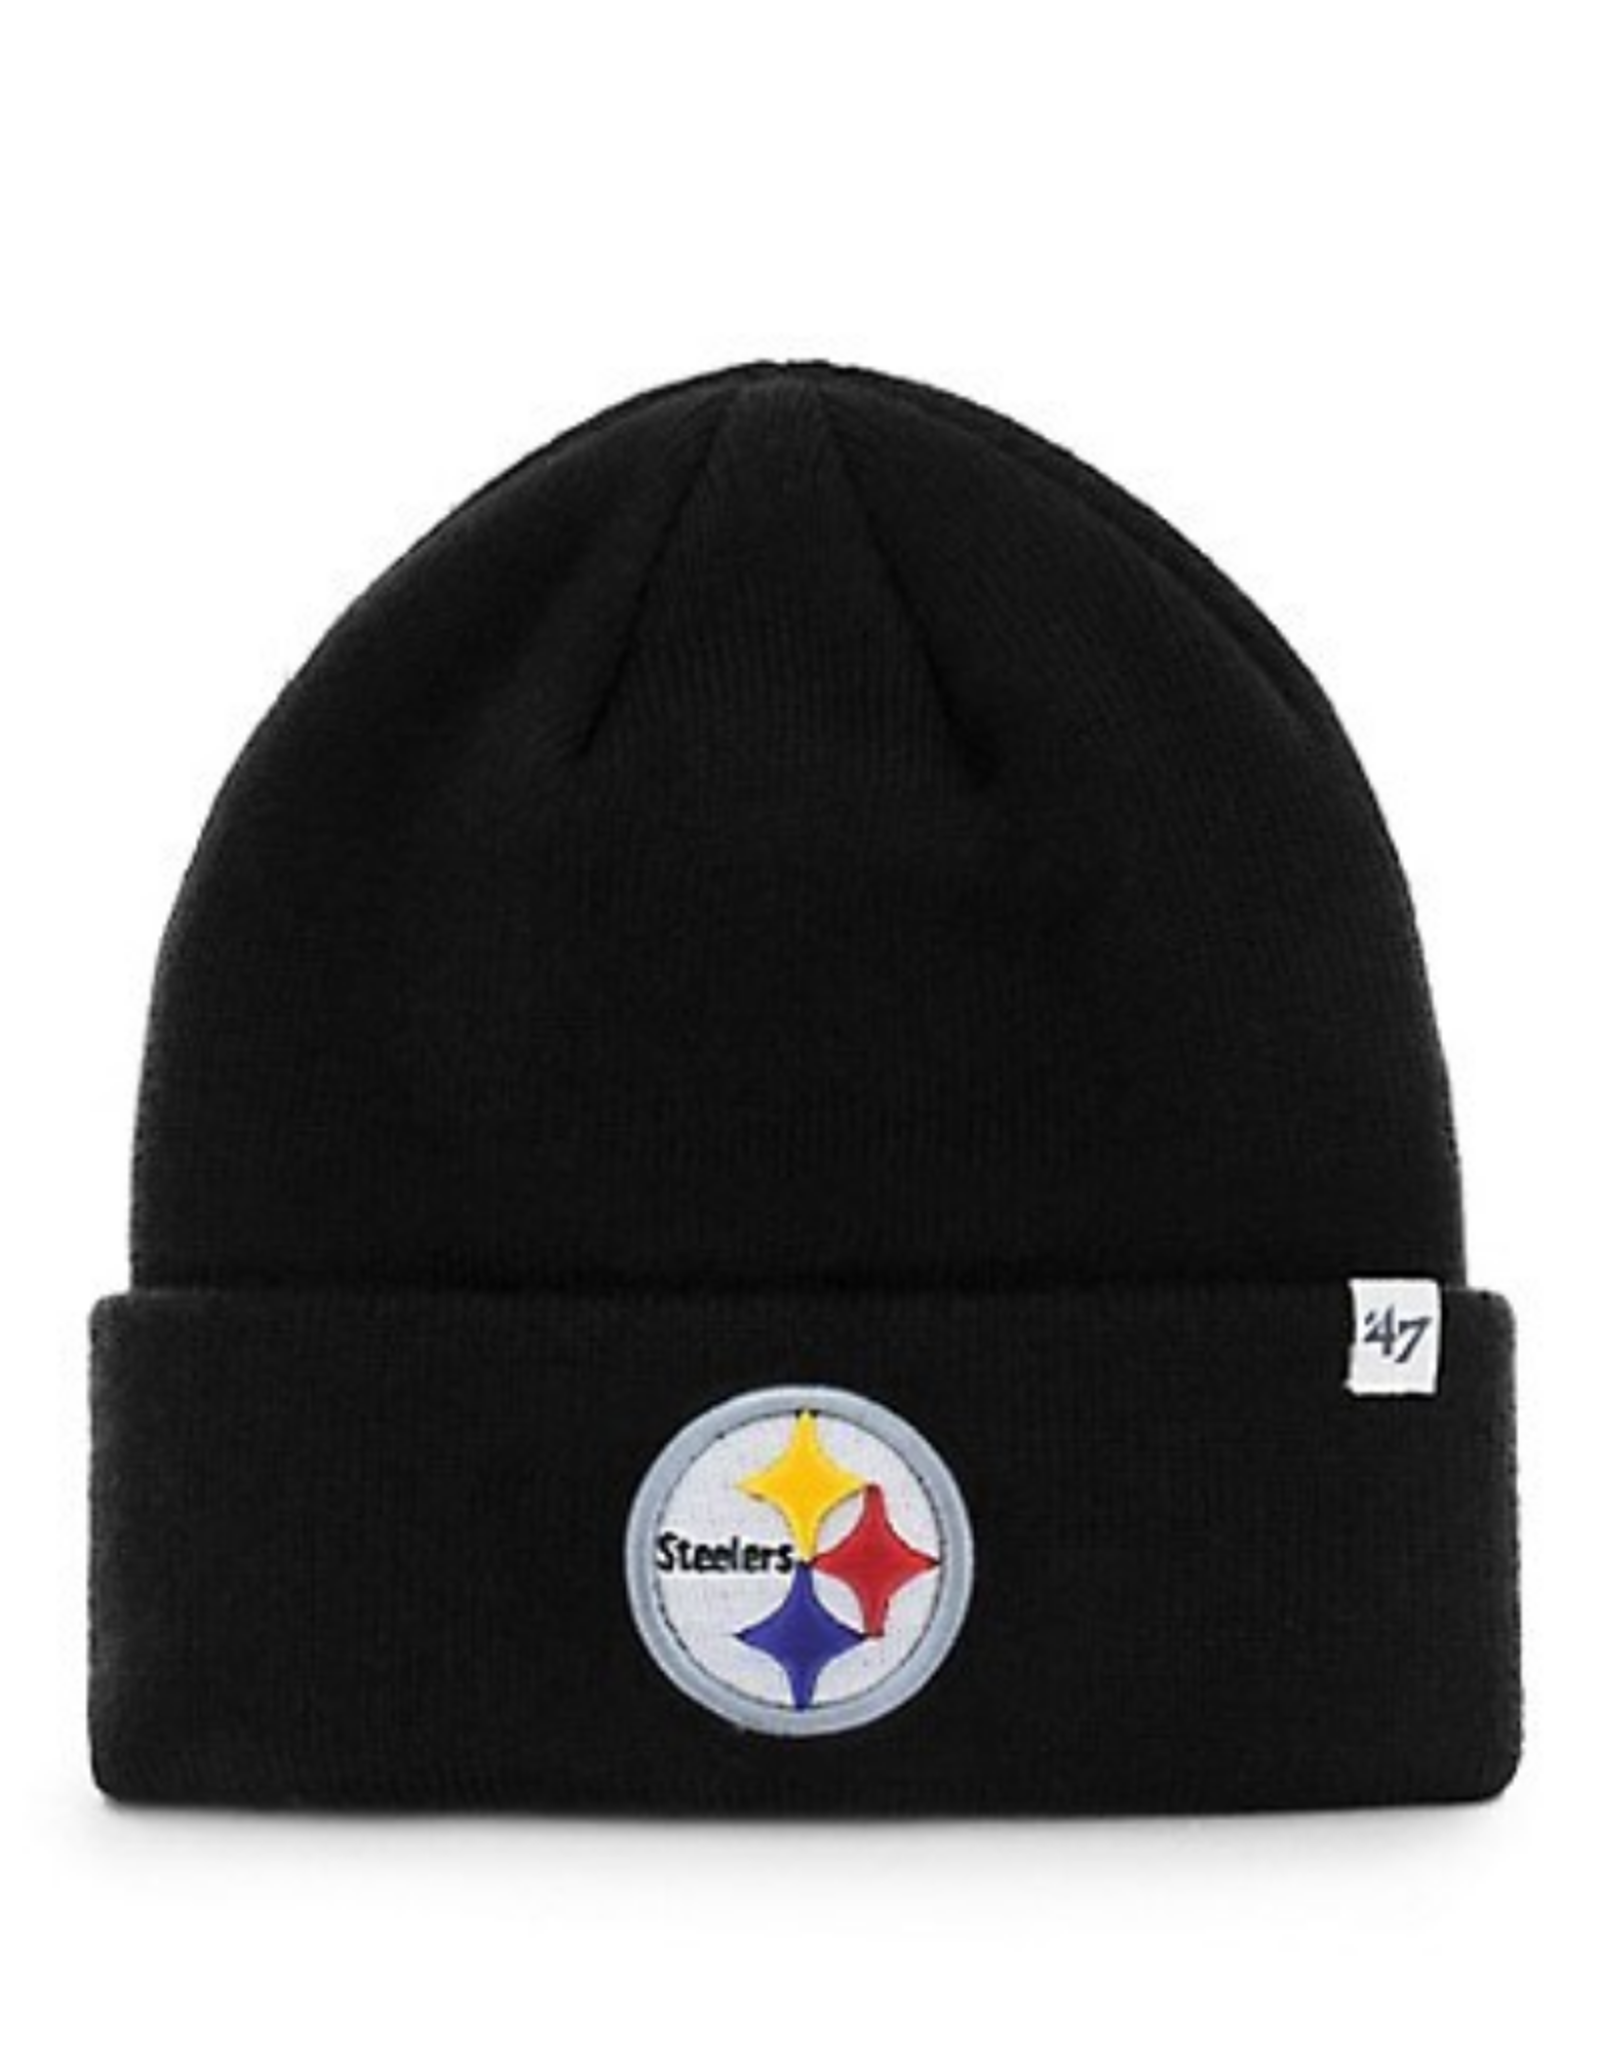 '47 Adult Raised Cuff Knit Pittsburgh Steelers Black